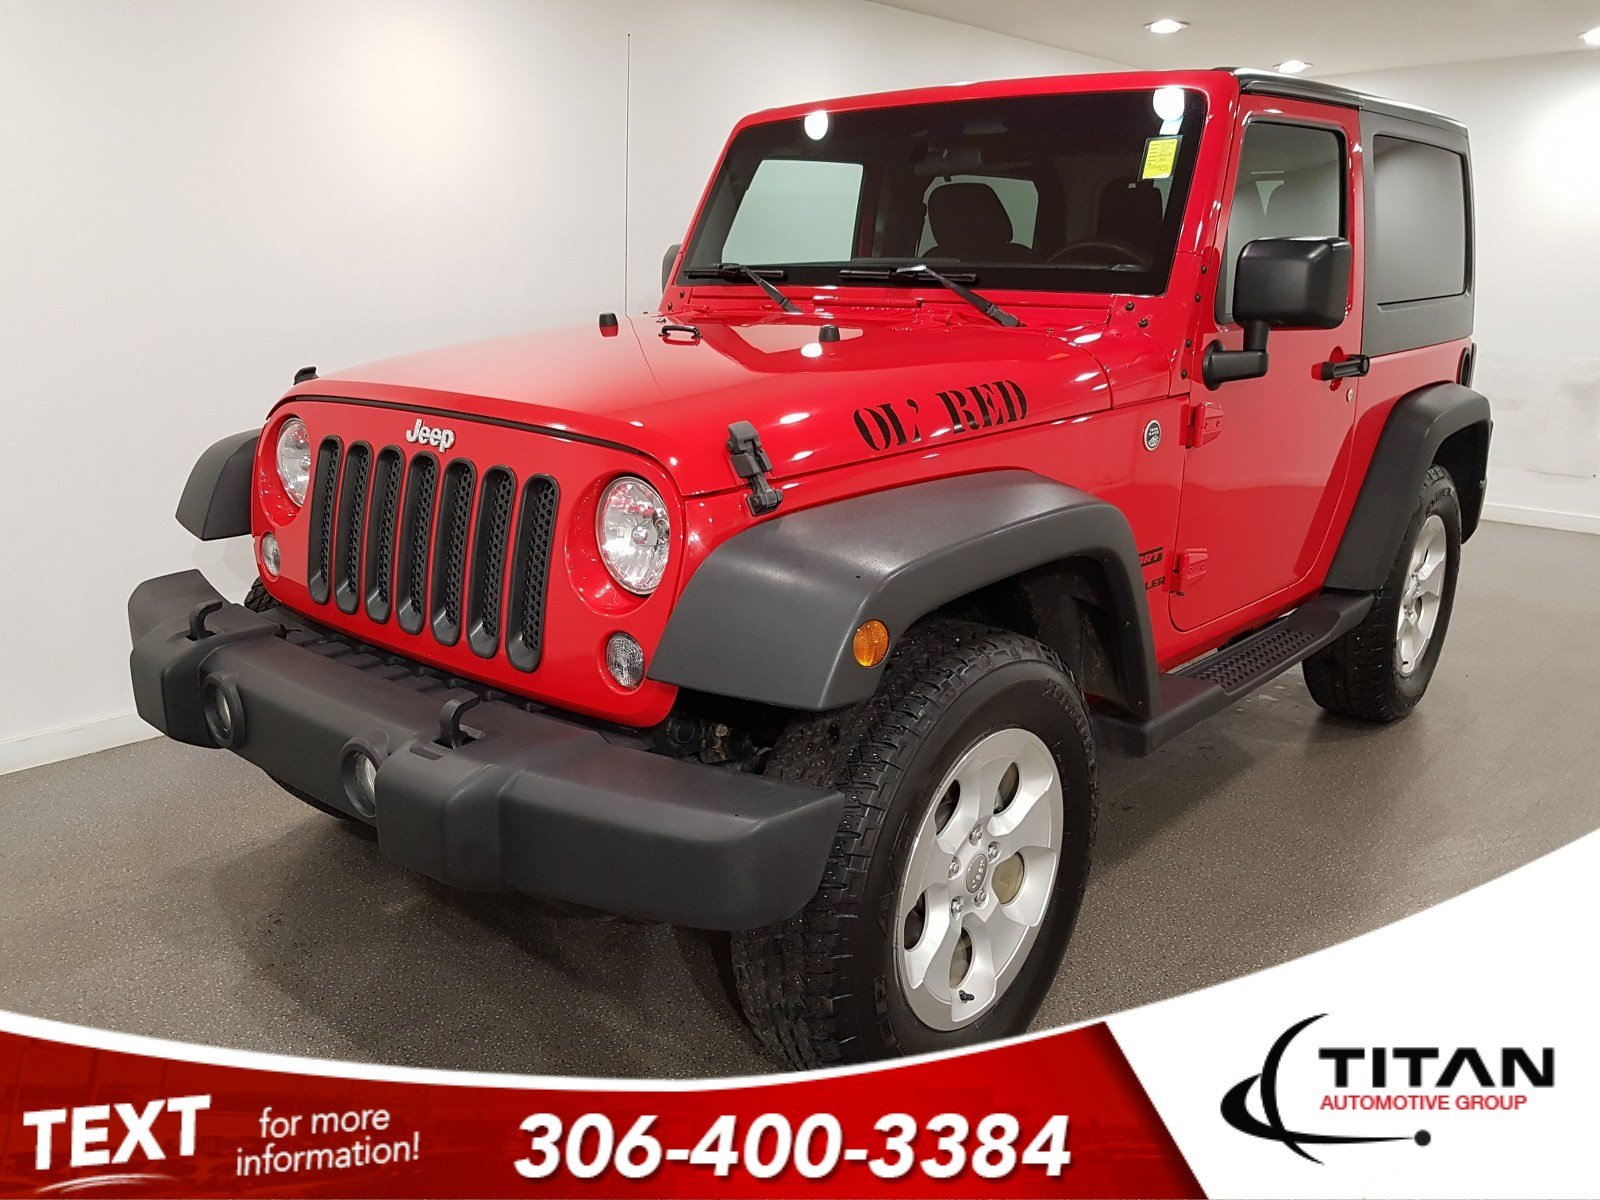 Pre-Owned 2015 Jeep Wrangler Sport|4x4|Alloys|3.6L V6 Pentastar|6spd|Aux|Removable Hardtop|Local